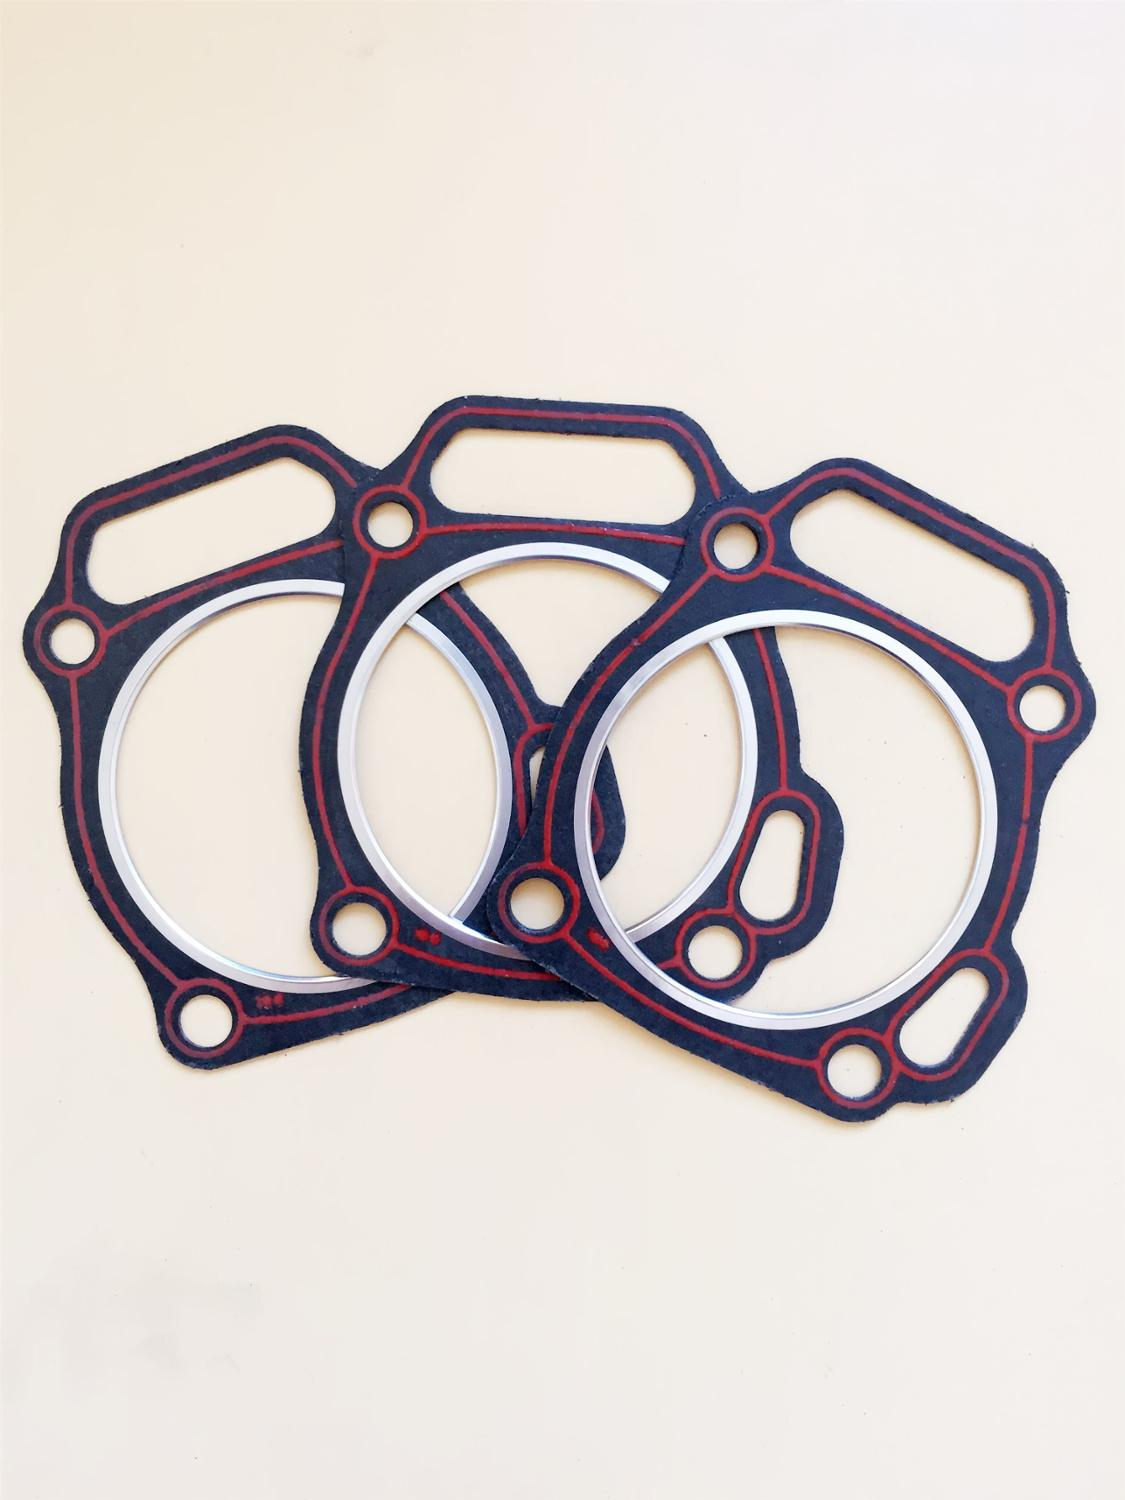 2pc 3pc 88MM Cylinder Head Gasket Fit For Honda 13HP GX 390 GX390 Chinese 188F Gasoline Engine Generator Water Pump Replacement